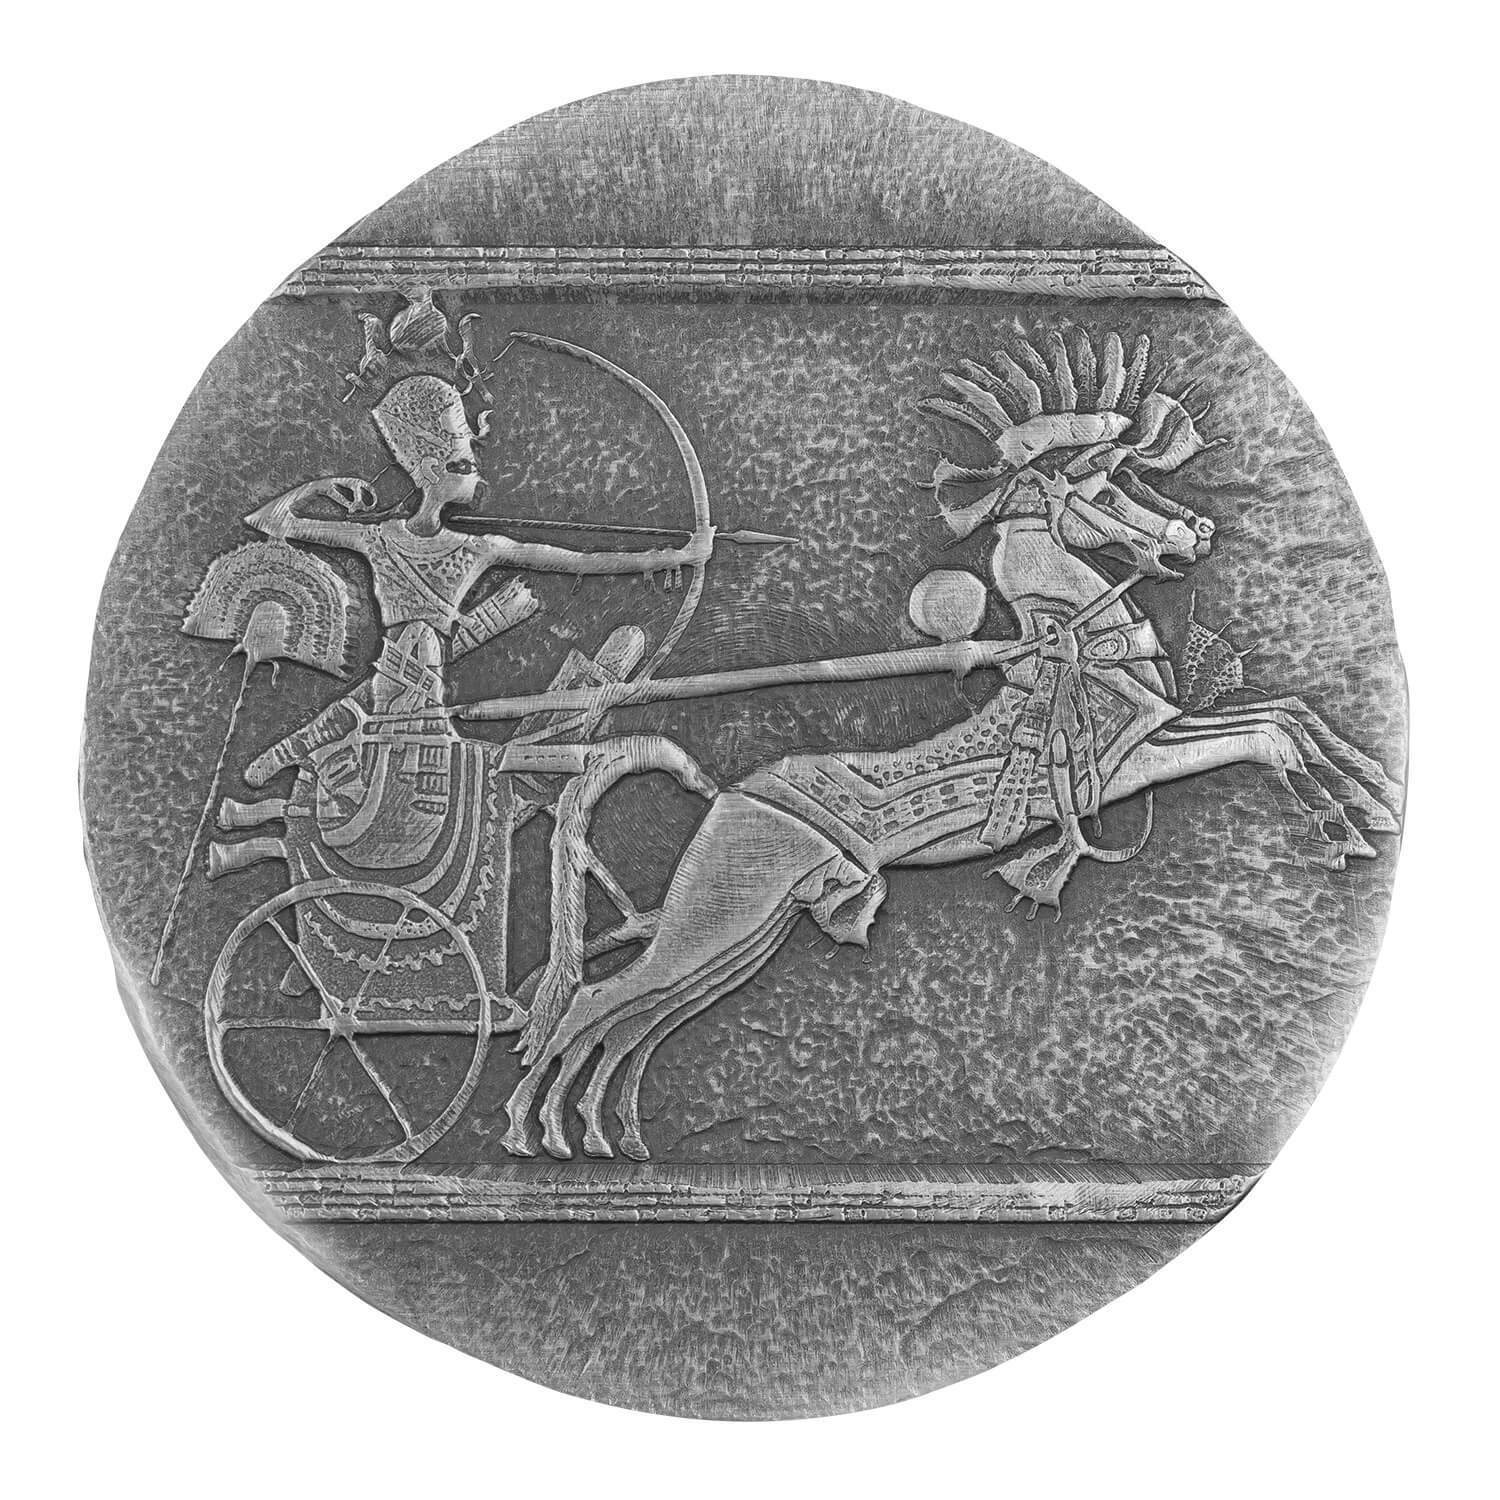 2020 Ers Chariot Race 5 Oz Antiqued Silver Coin